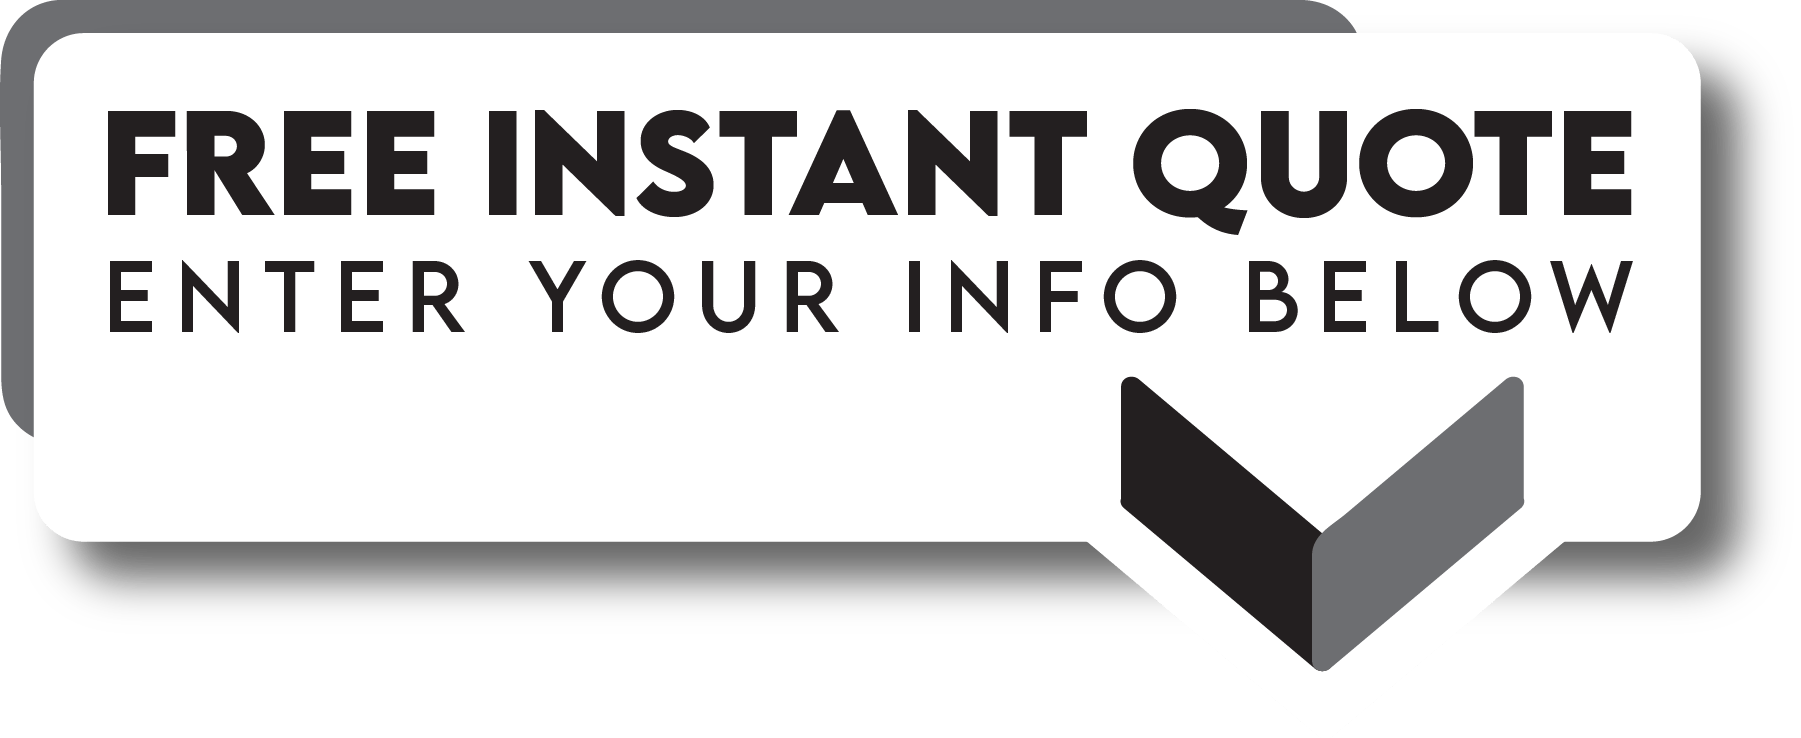 Cleaning Services Huntington NY Instant Quote